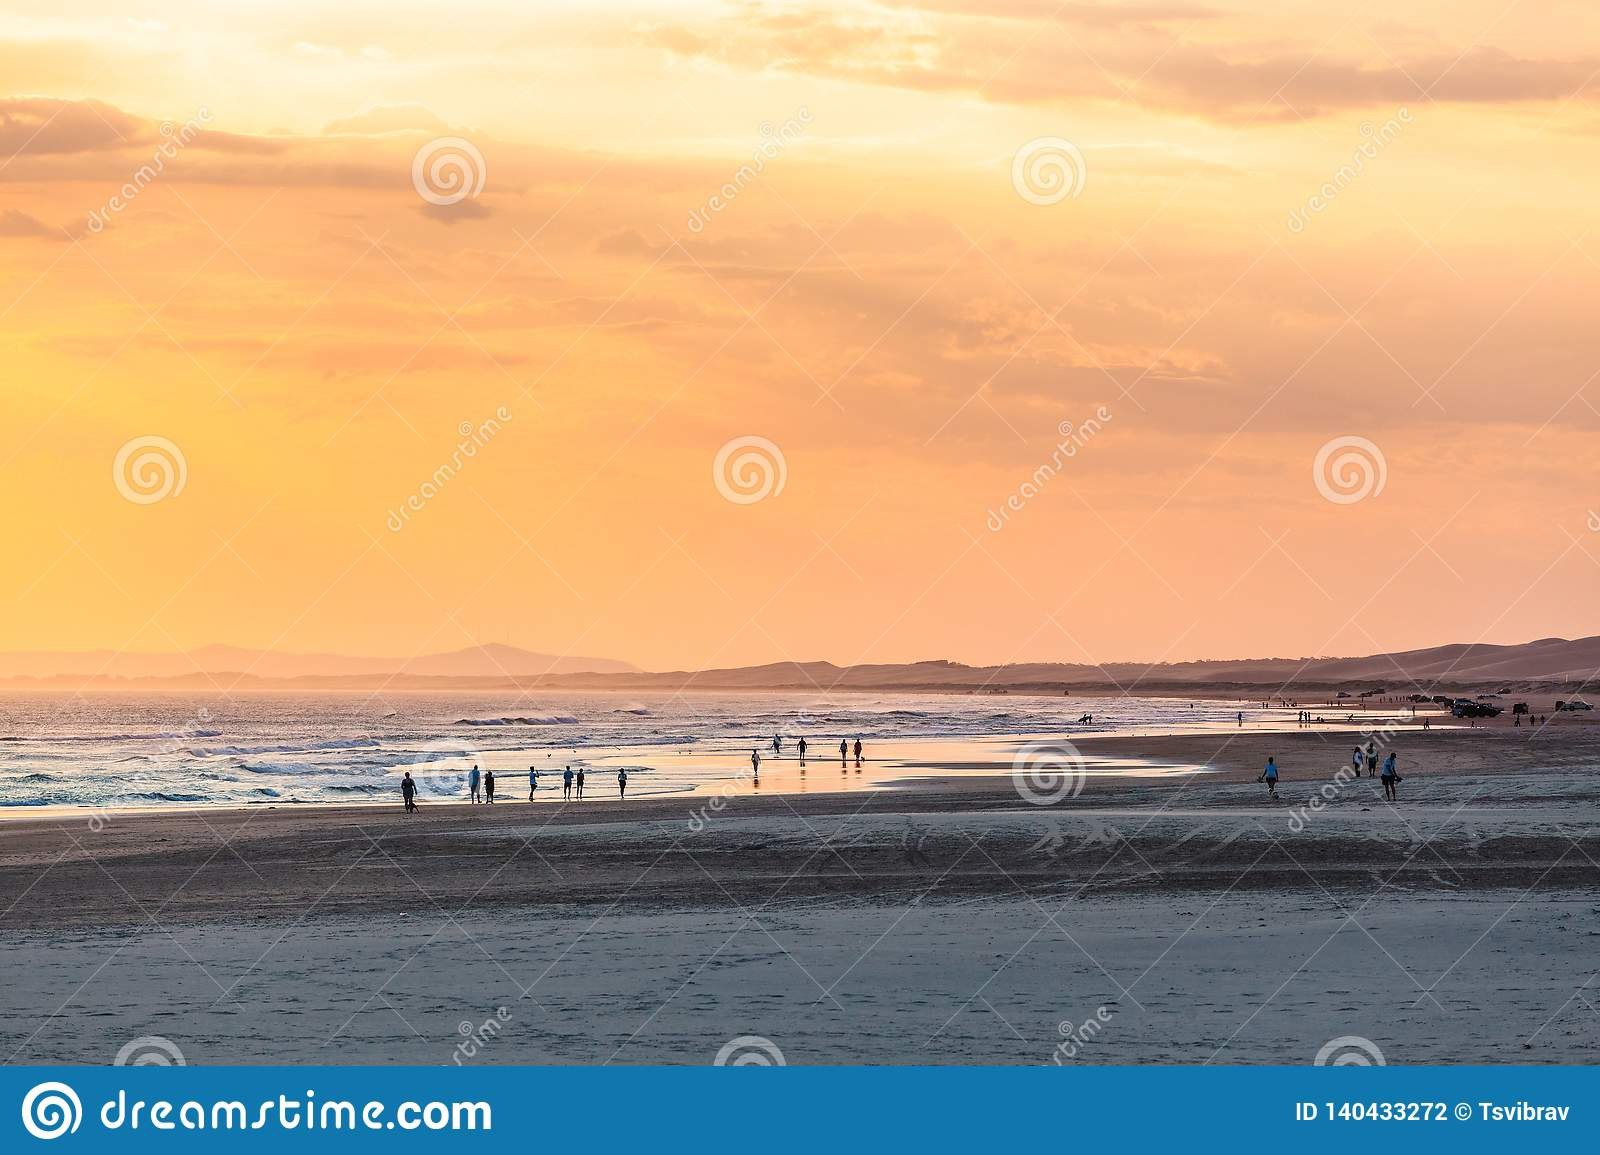 People Enjoying The Good Weather On Ocean Beach Stock Photo Image Of Australia Beach 140433272 Weather forecast for ocean beach | euronews, previsions for ocean beach, california, united states (temperature, wind, rainfall…). dreamstime com